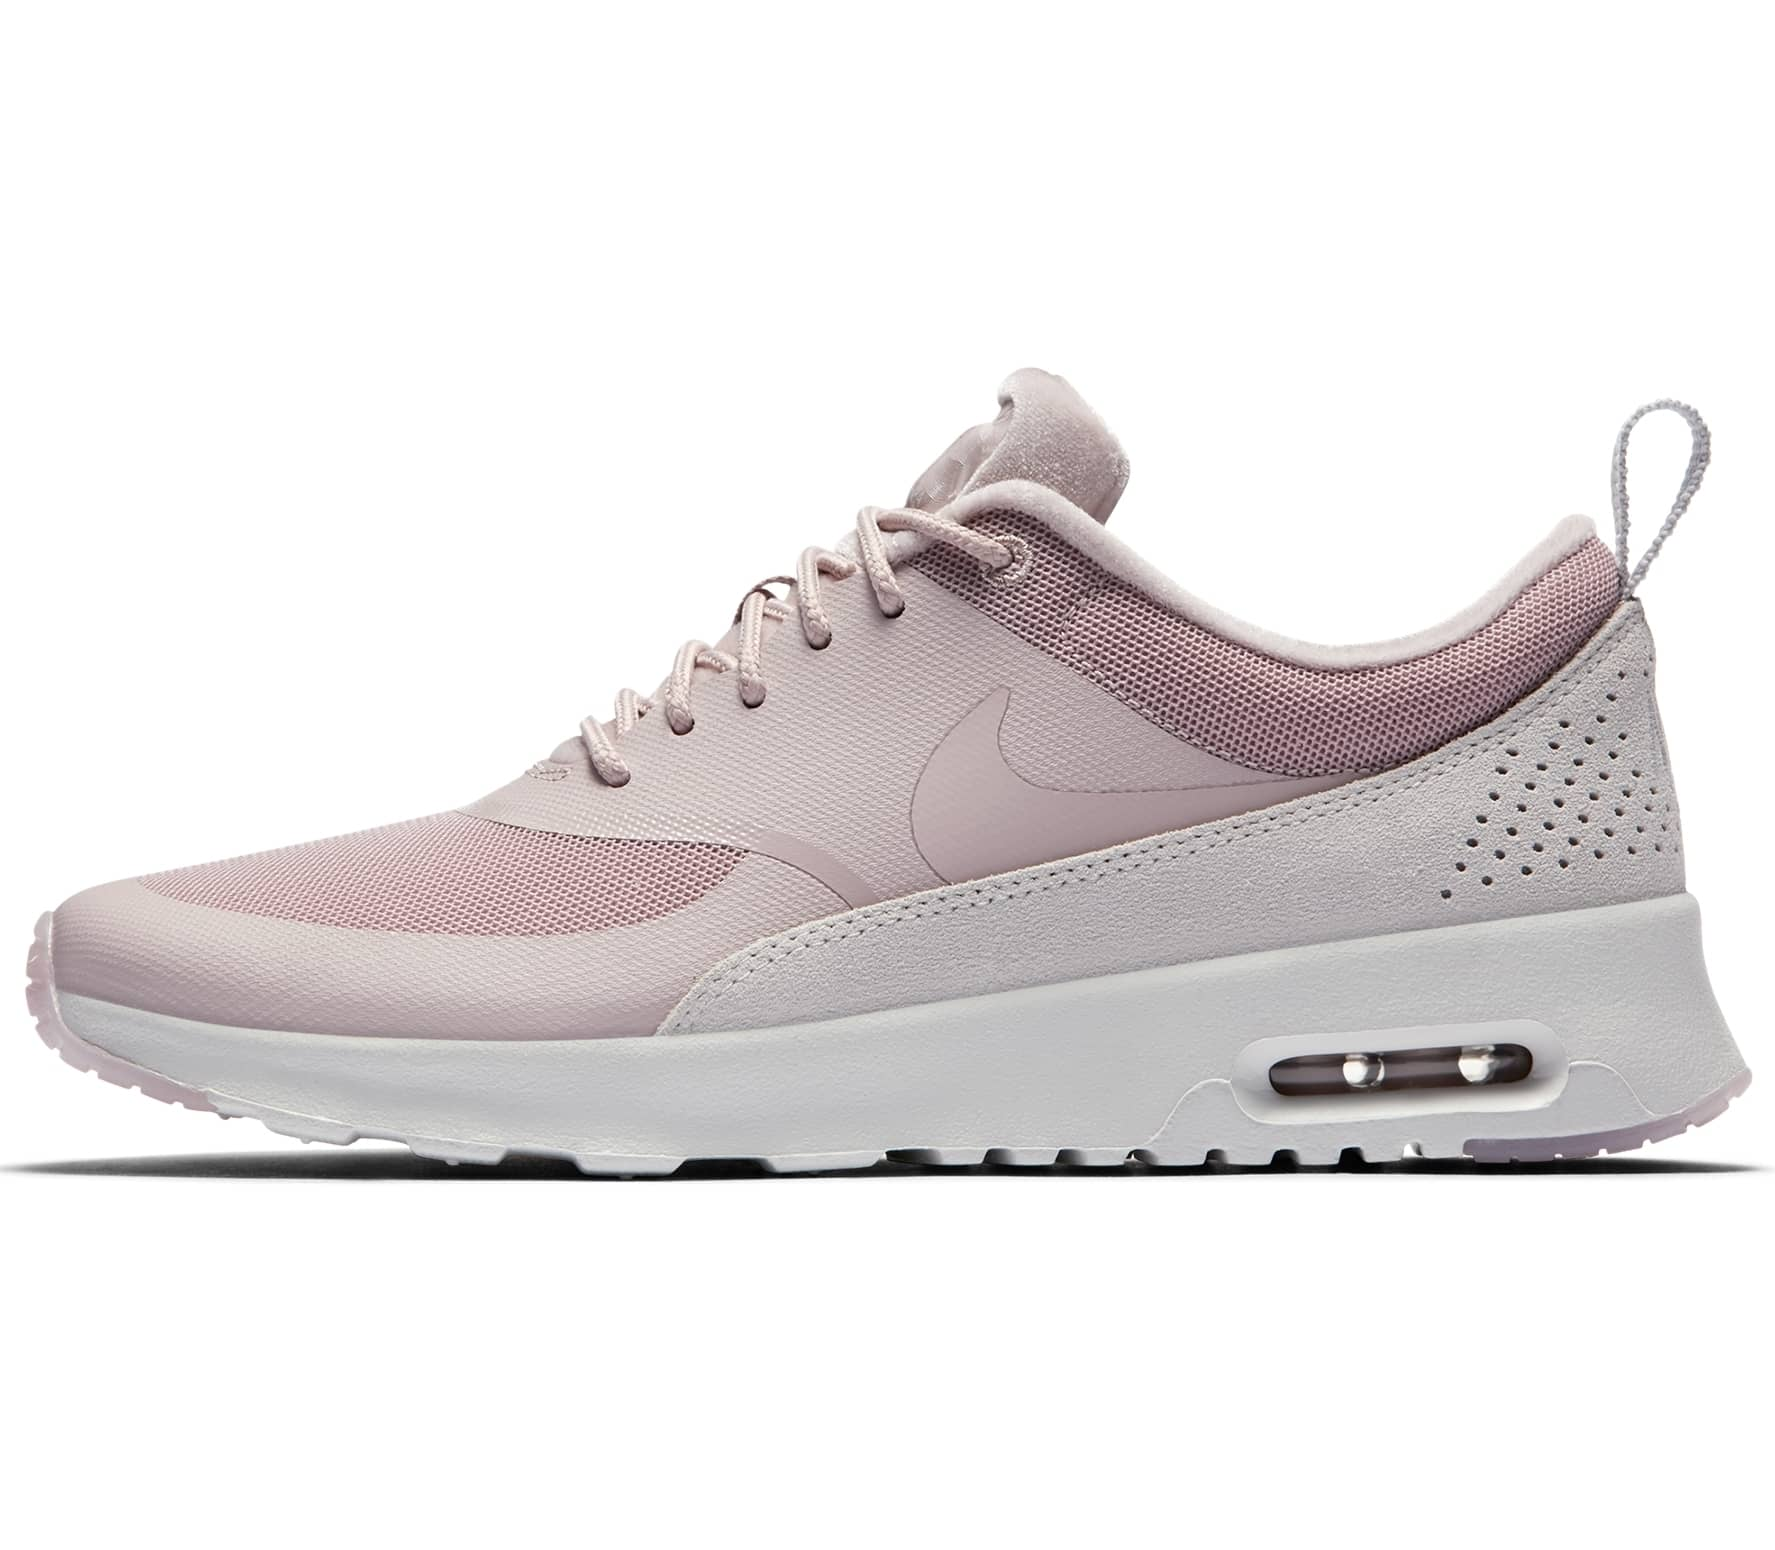 official photos 46147 87ef1 Nike - Air Max Thea LX Femmes espadrille (rose)